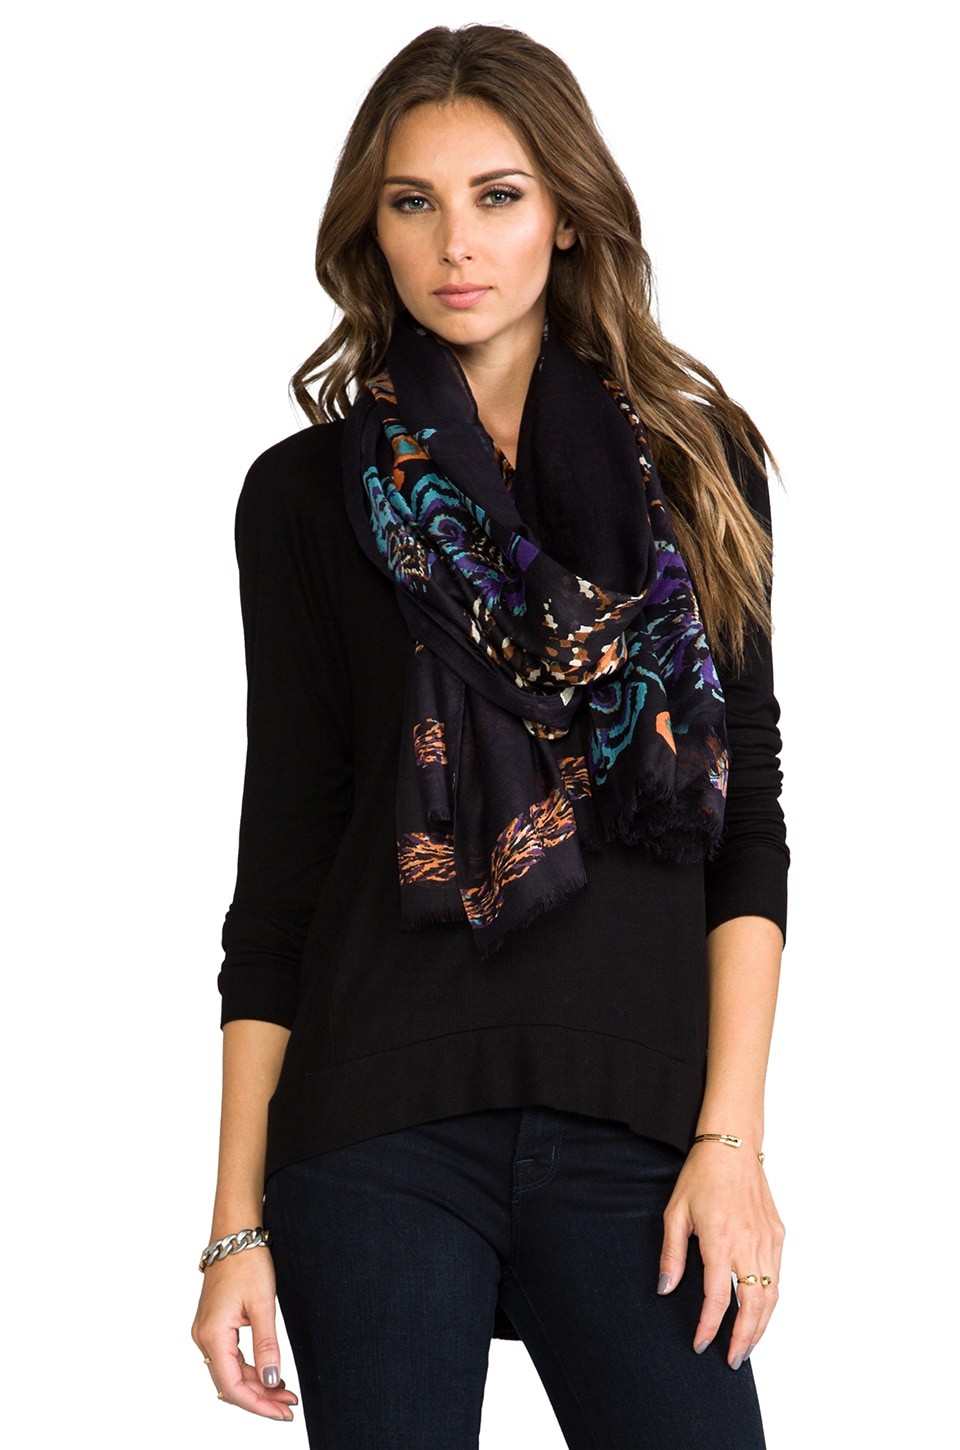 Twelfth Street By Cynthia Vincent We Shall See Chevy Blossom Scarf in Chevy Blossom